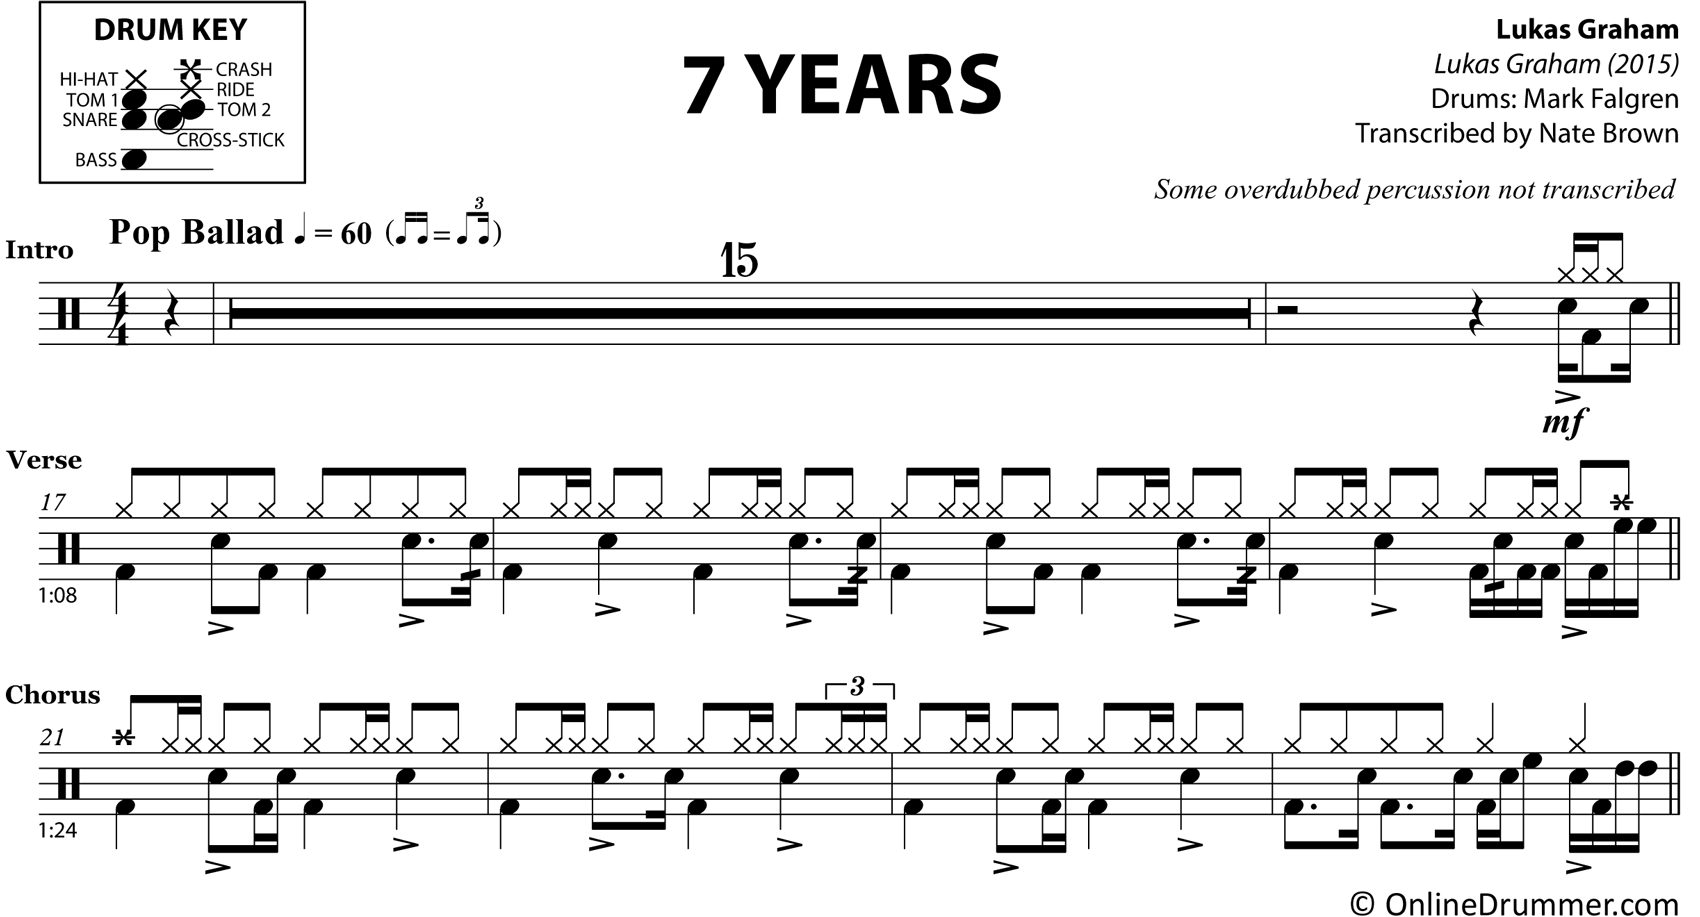 7 Years - Lukas Graham - Drum Sheet Music